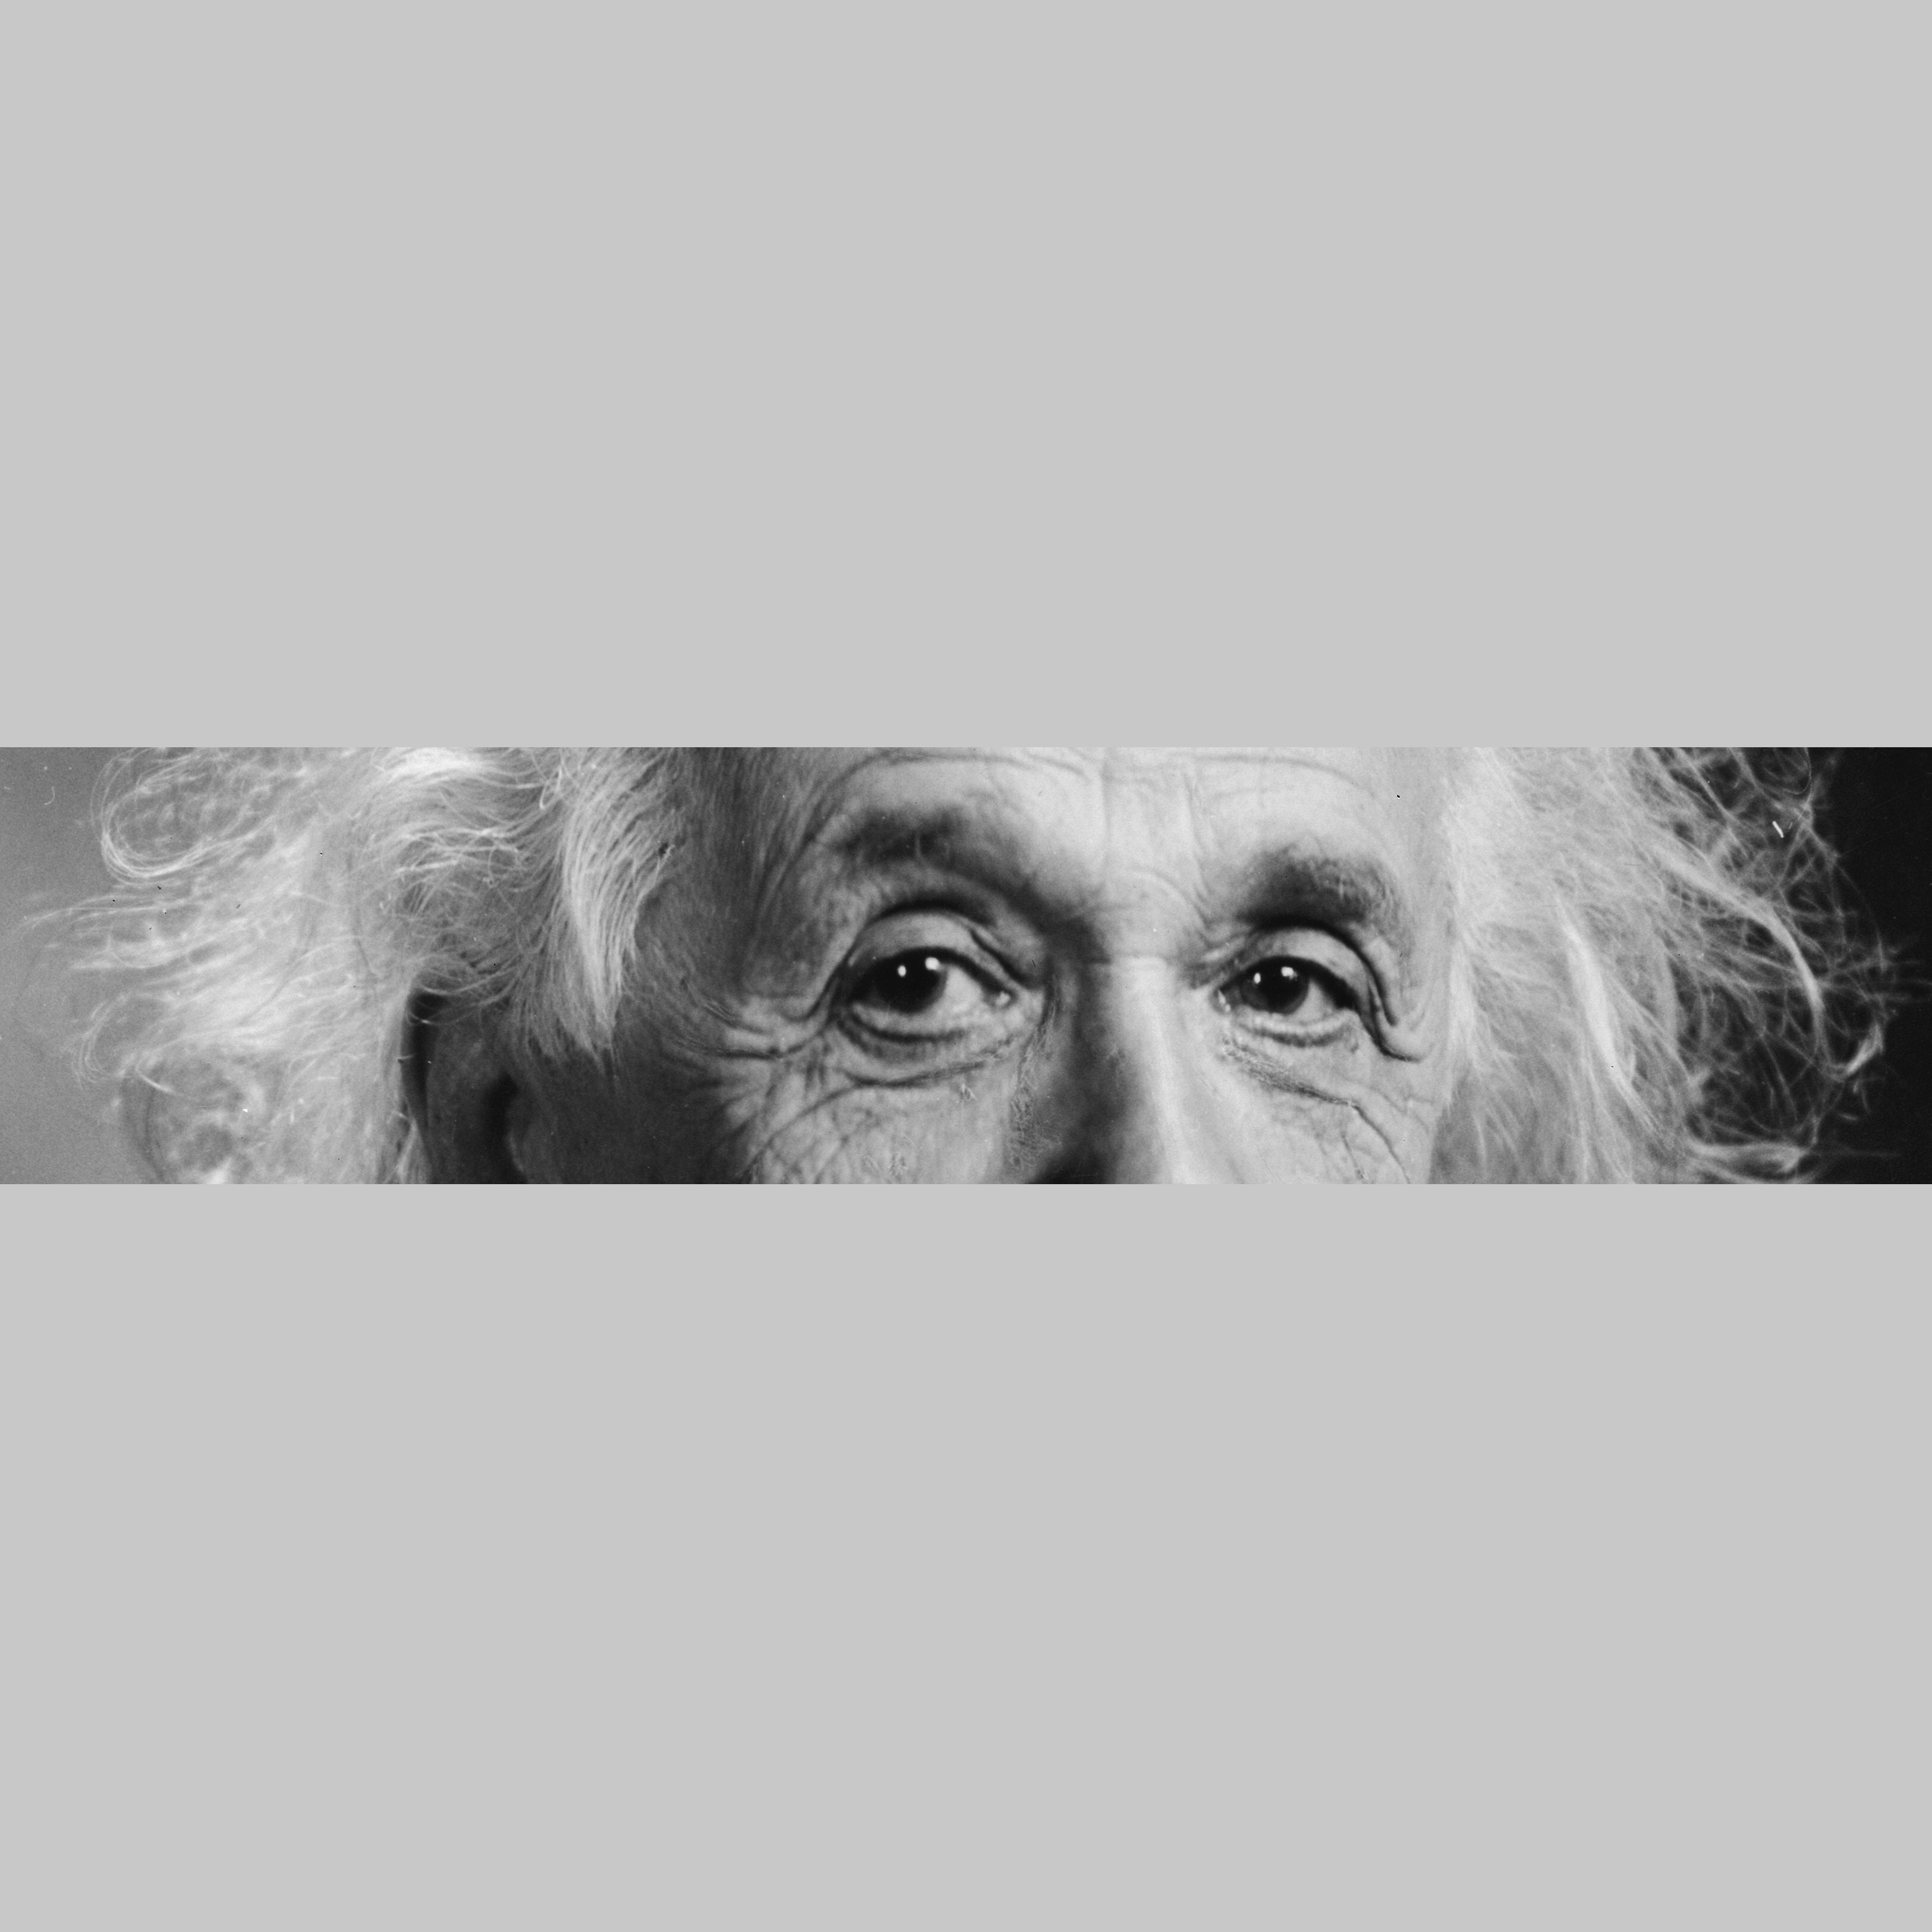 Image created with a detail of a photograph by Orren Jack Turner, Princeton, N.J. Modified with Photoshop by PM_Poon and later by Dantadd. Source: https://it.wikipedia.org/wiki/Albert_Einstein#/media/File:Albert_Einstein_Head.jpg